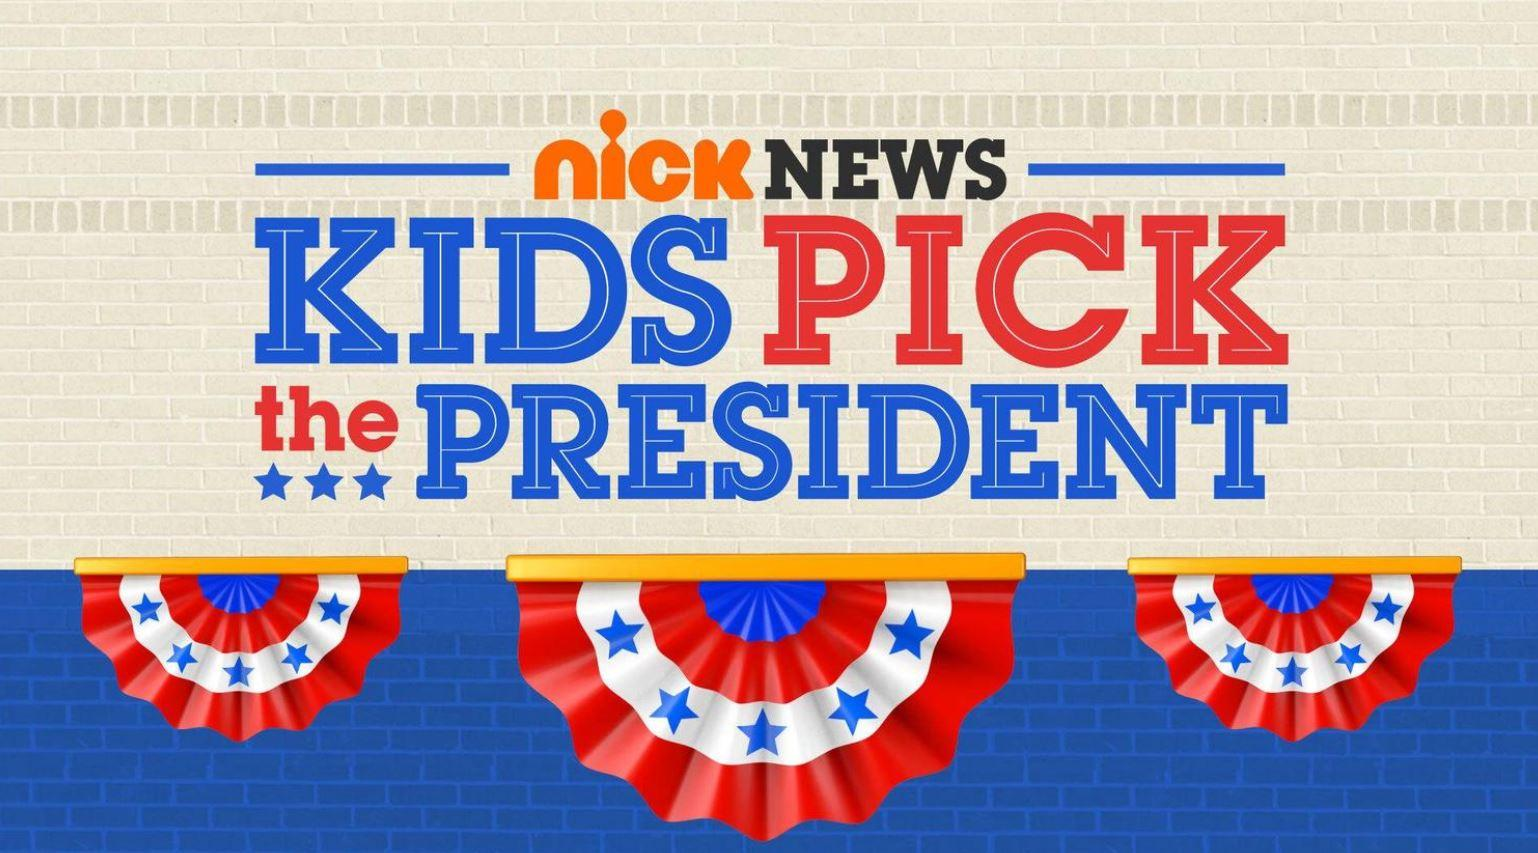 Joe Biden wins the 2020 election in an informal youth vote conducted by Nickelodeon